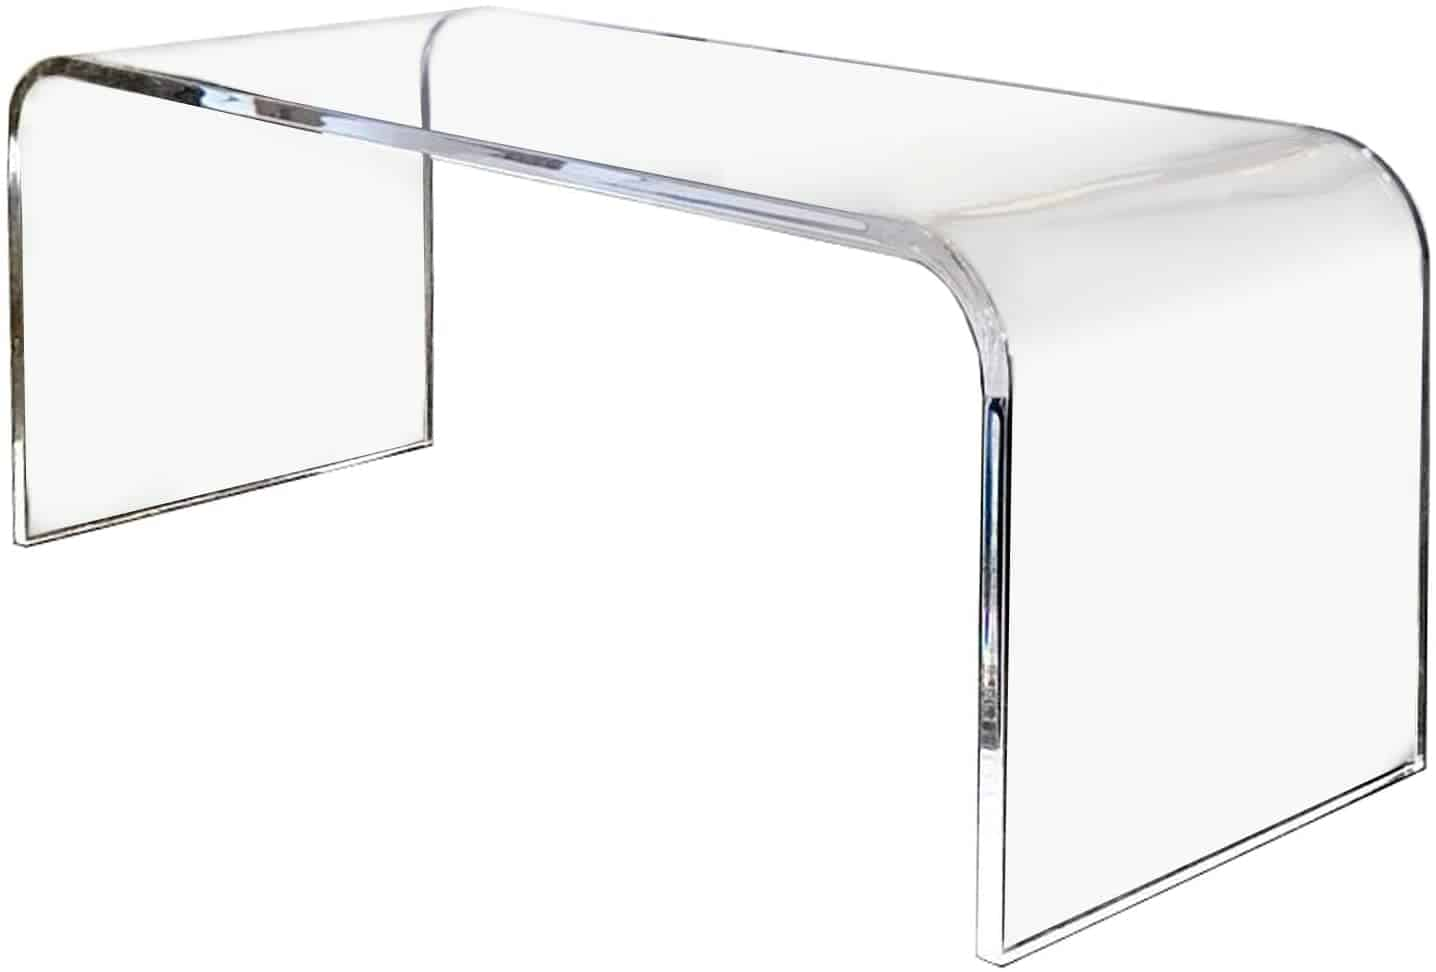 Acrylic see-through table with rounded corners